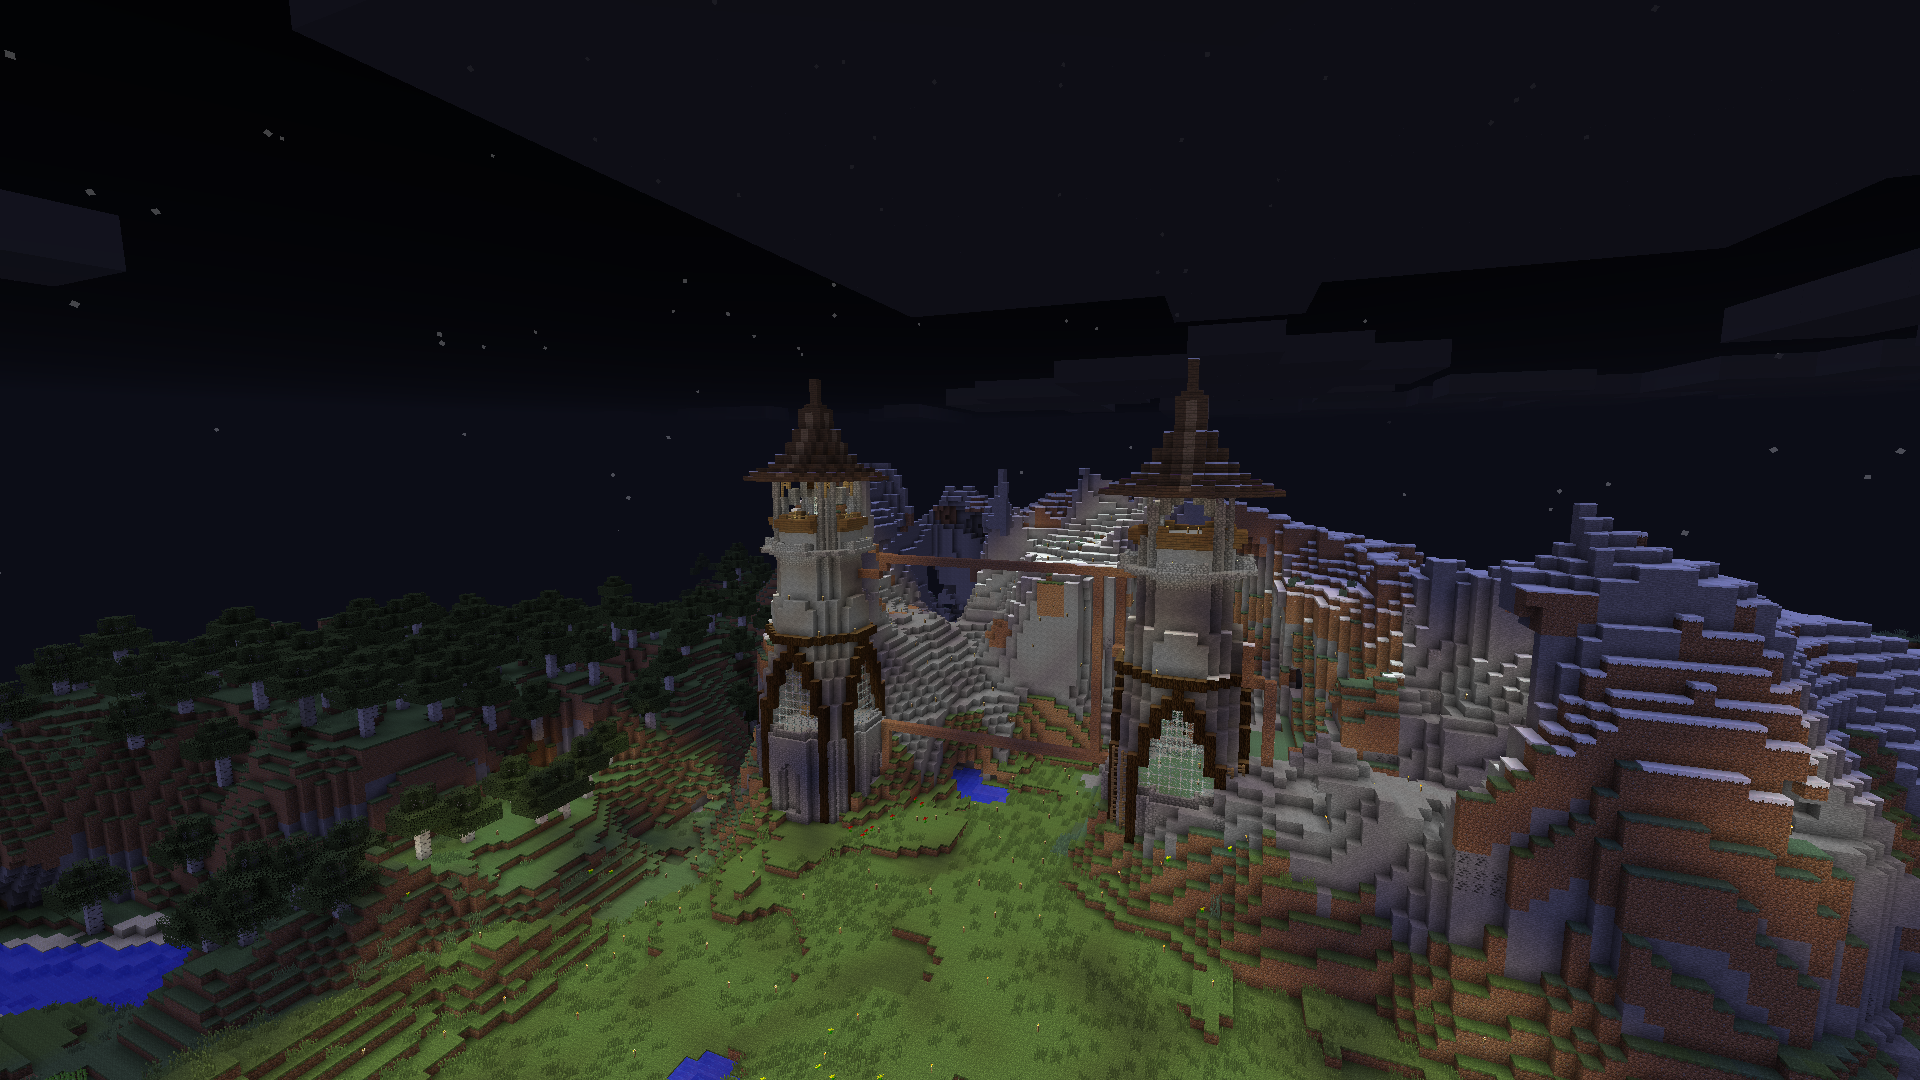 Minecraft Mountain Castle by eapatrick on DeviantArt